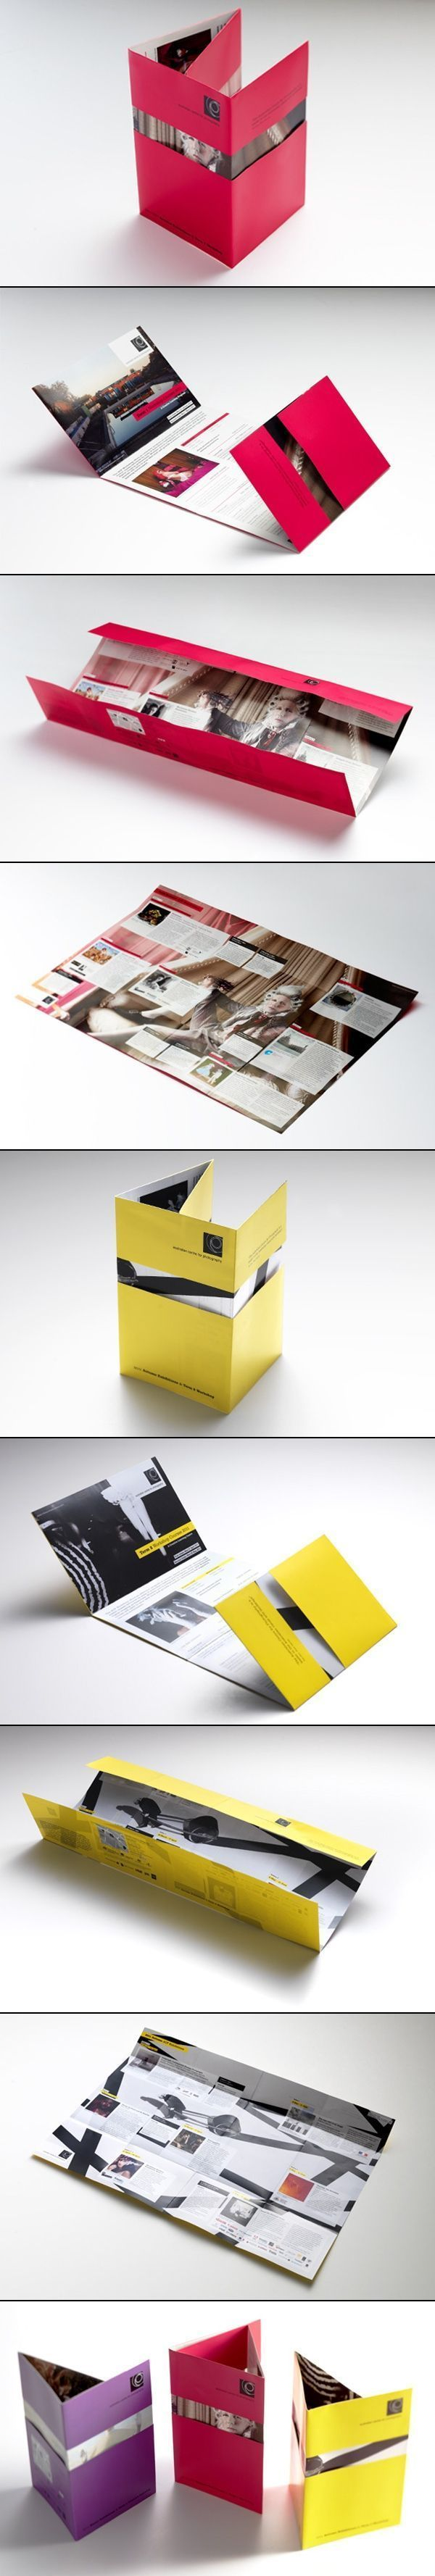 Interesting multi fold poster brochure – nifty idea for revealing designs